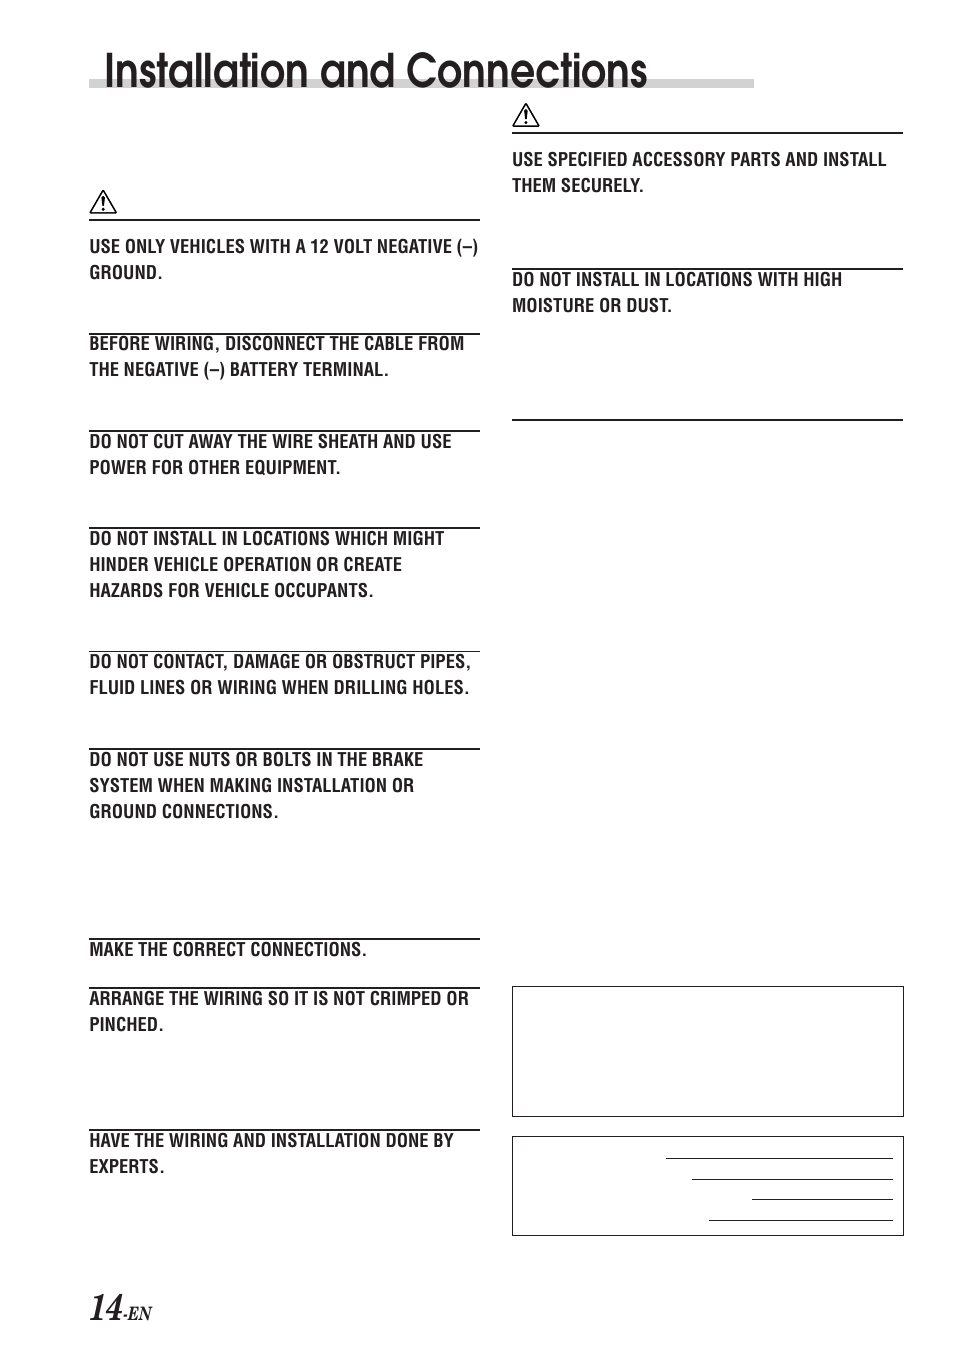 installation and connections warning caution alpine cde 7853 user manual page 16 19